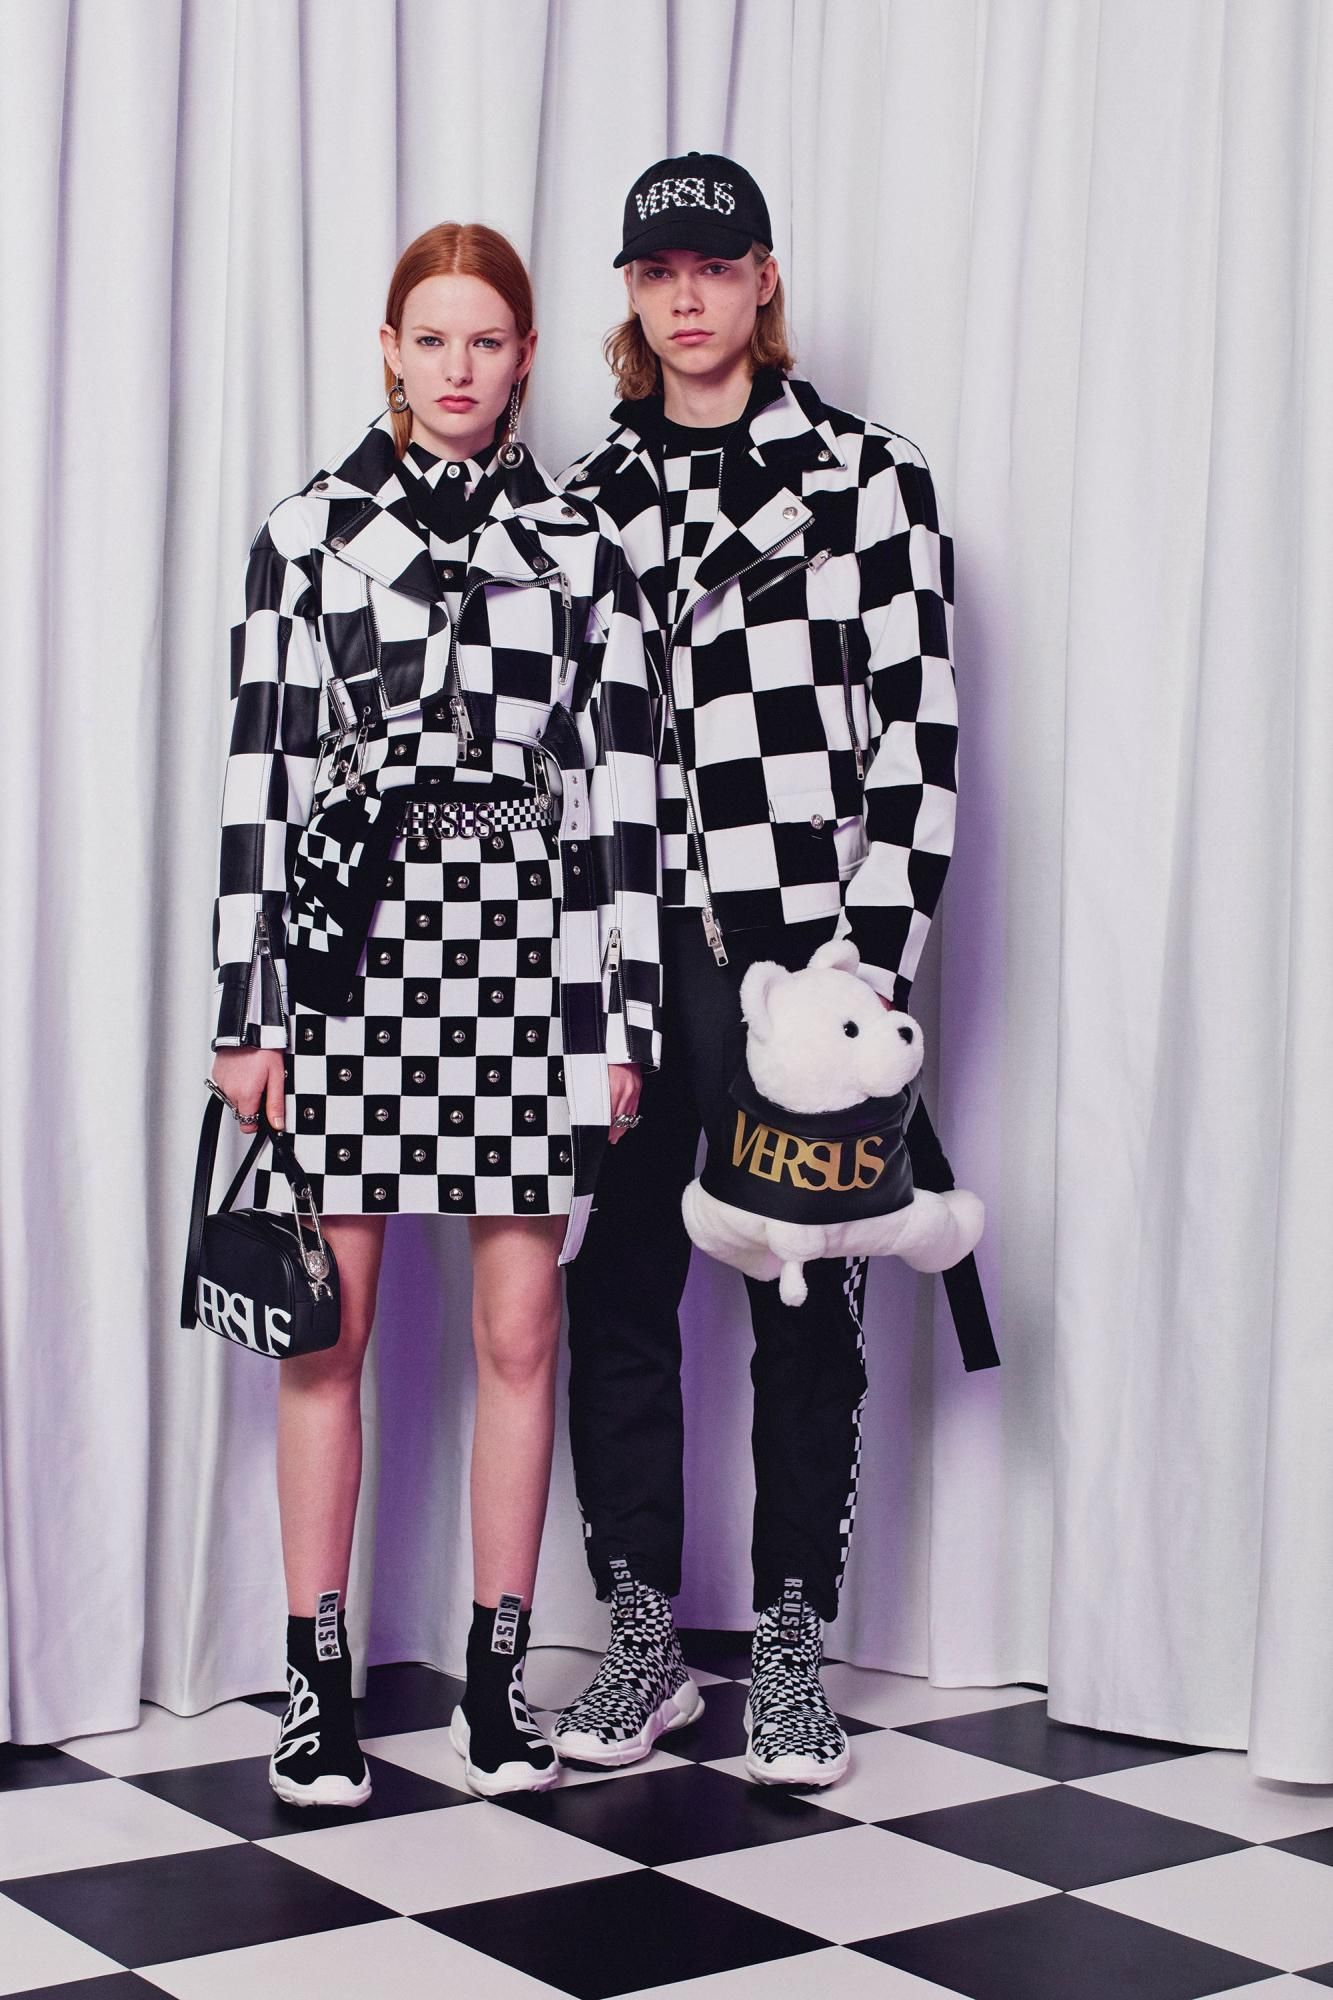 fc9c5f4aa4fc Designers Race to Incorporate Motorsport Motifs for Fall 2018